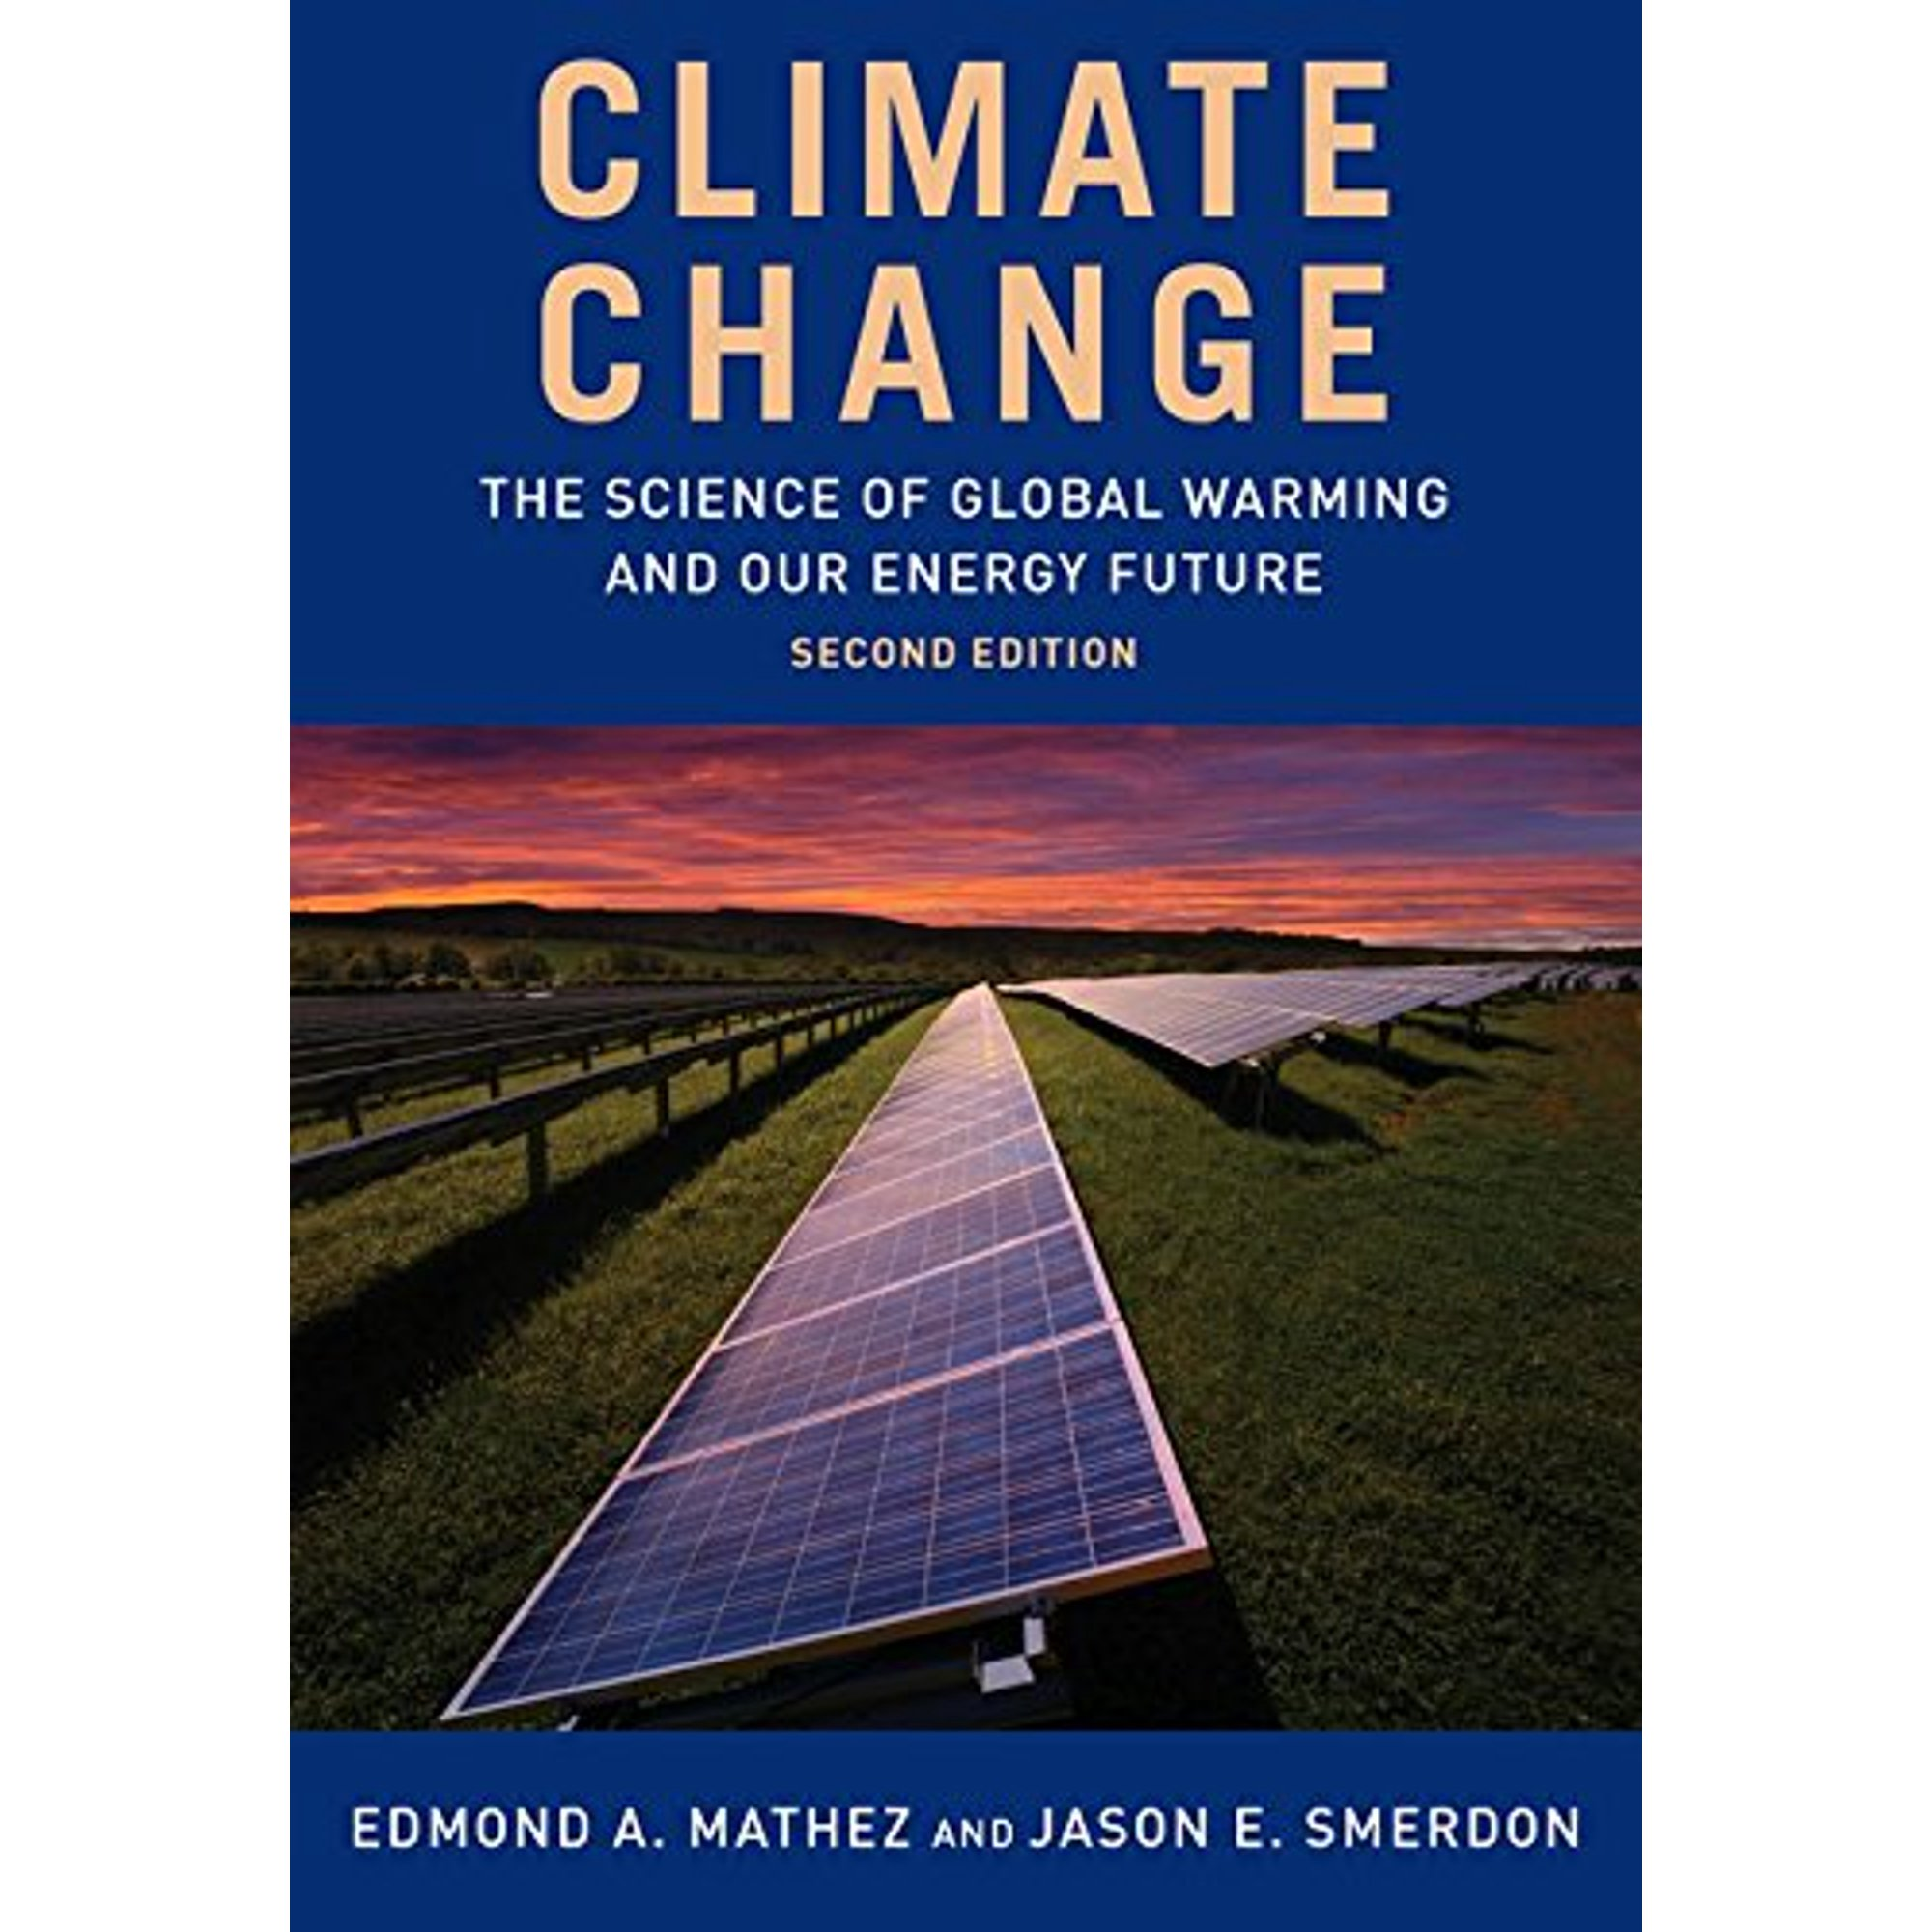 404+Climate Change The Science of Global Warming and Our Energy Future